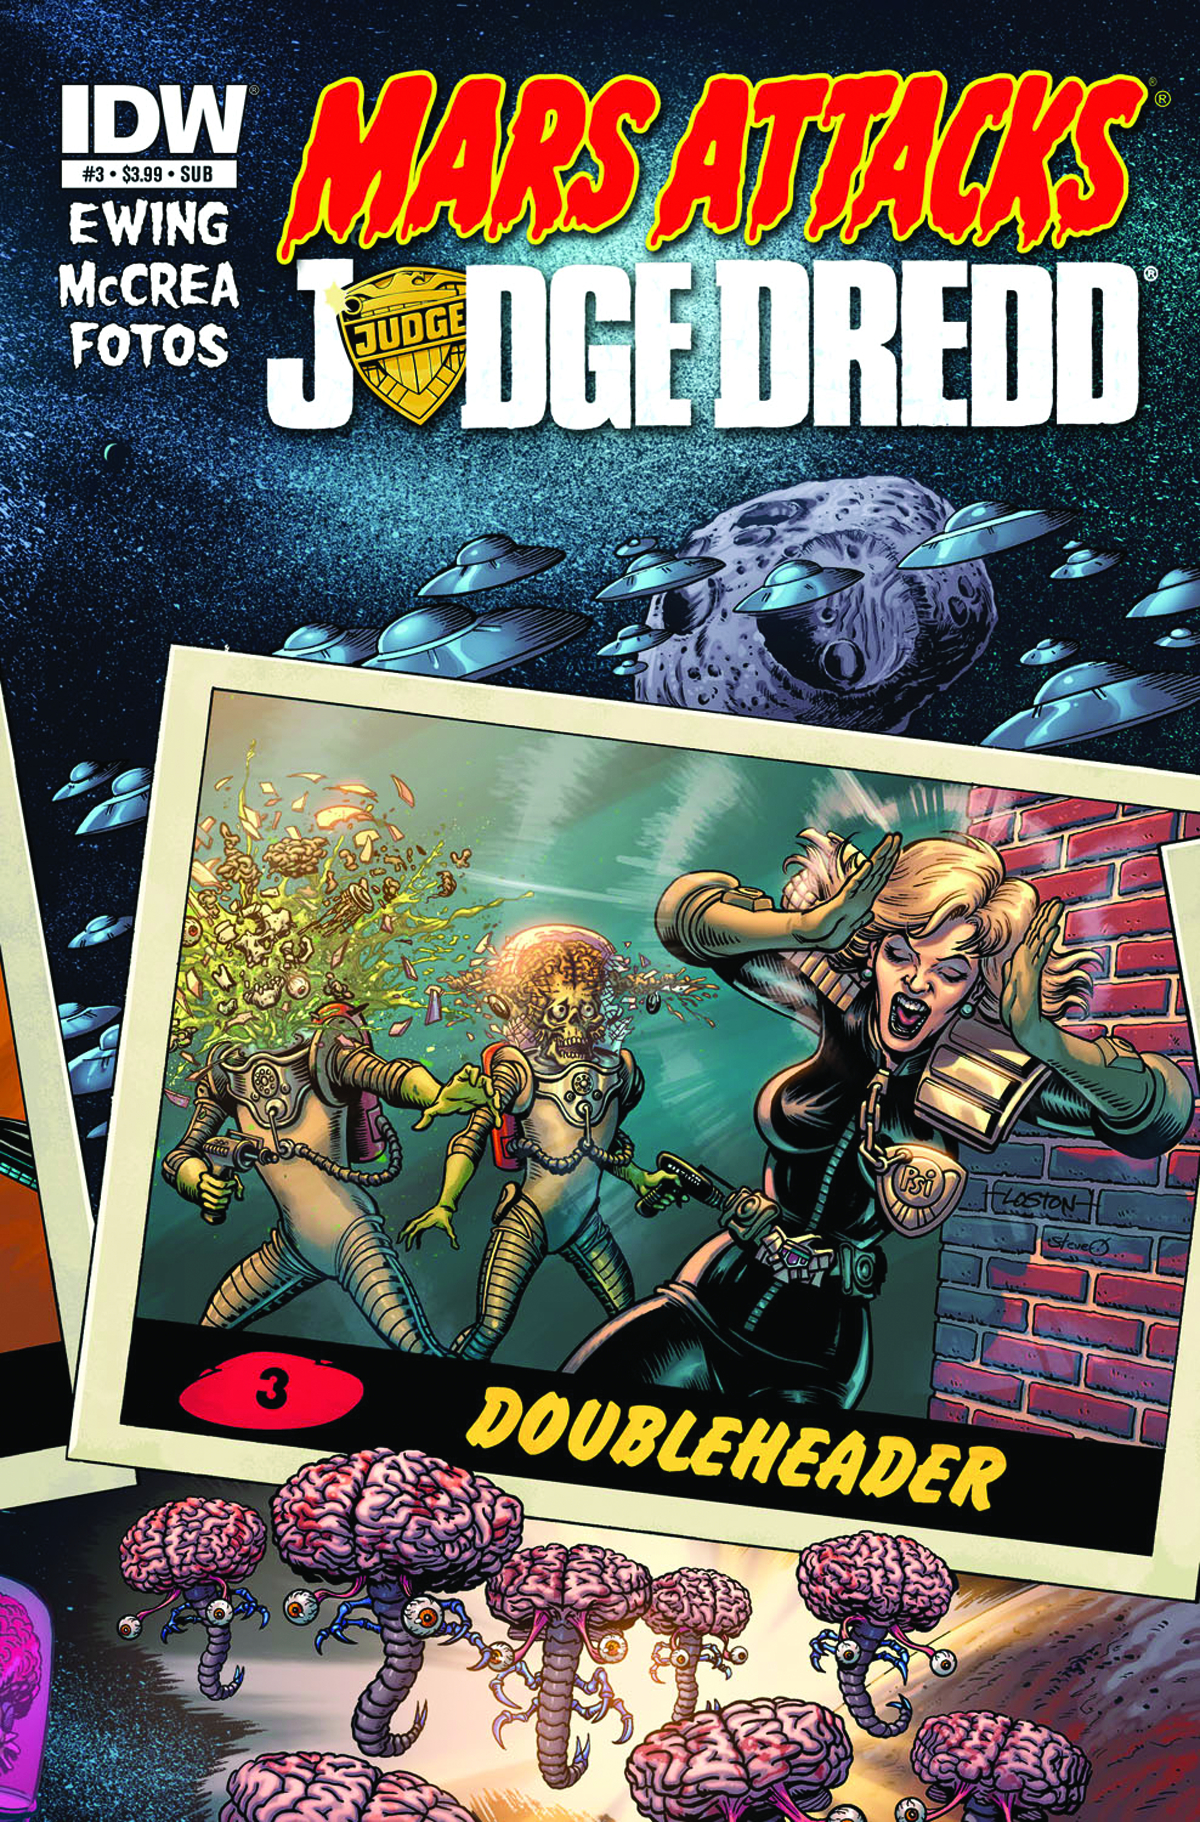 MARS ATTACKS JUDGE DREDD #3